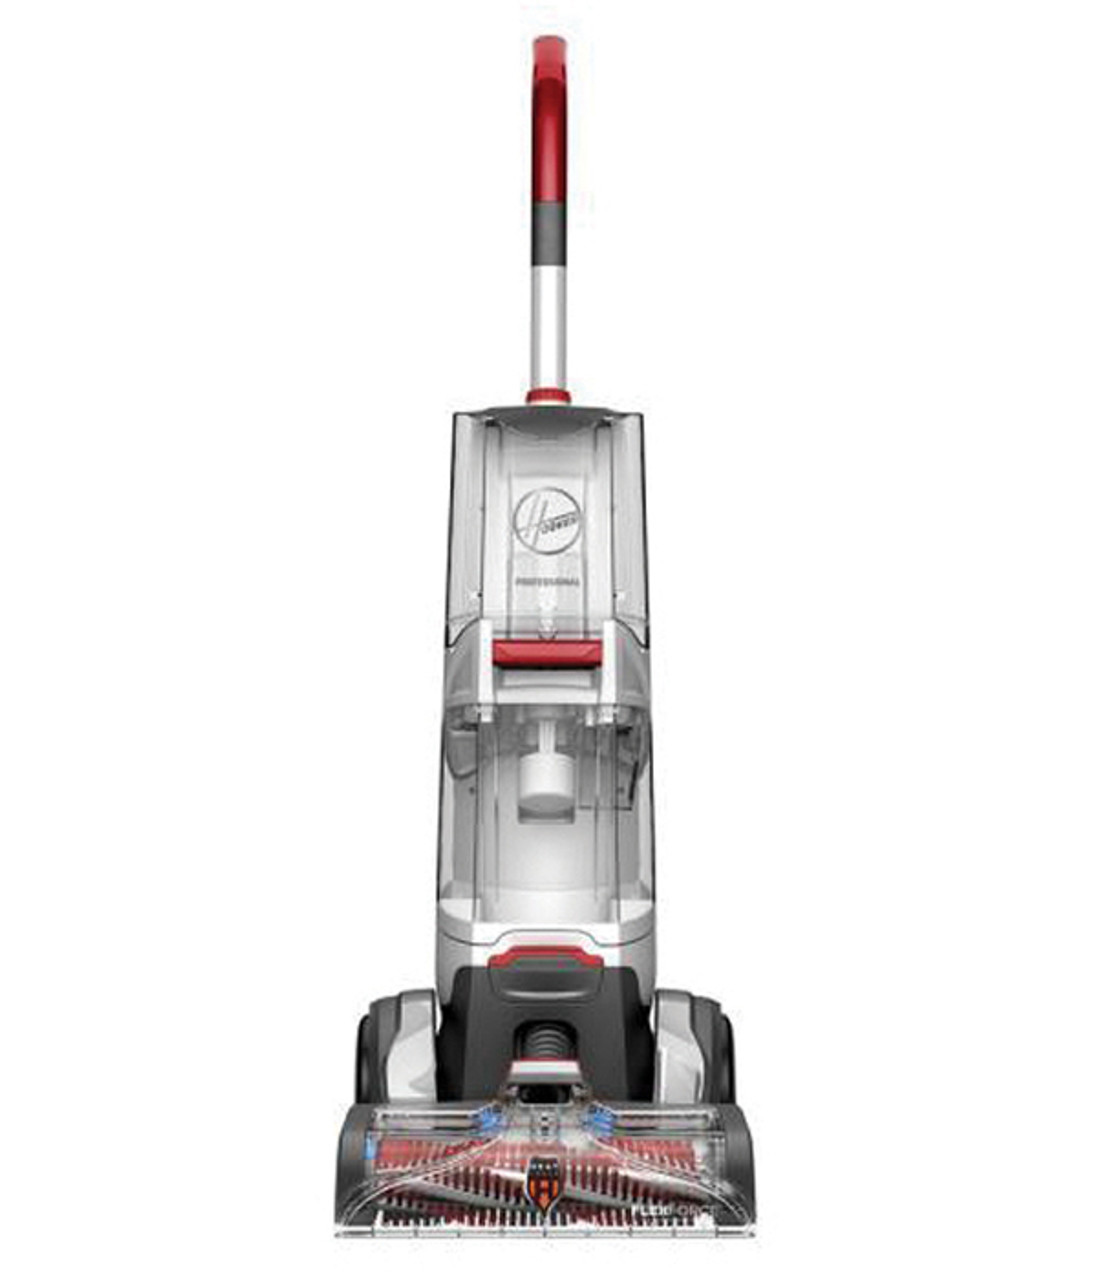 The Smartwash Advanced Pet Automatic Carpet Cleaner is lightweight and easy to use.